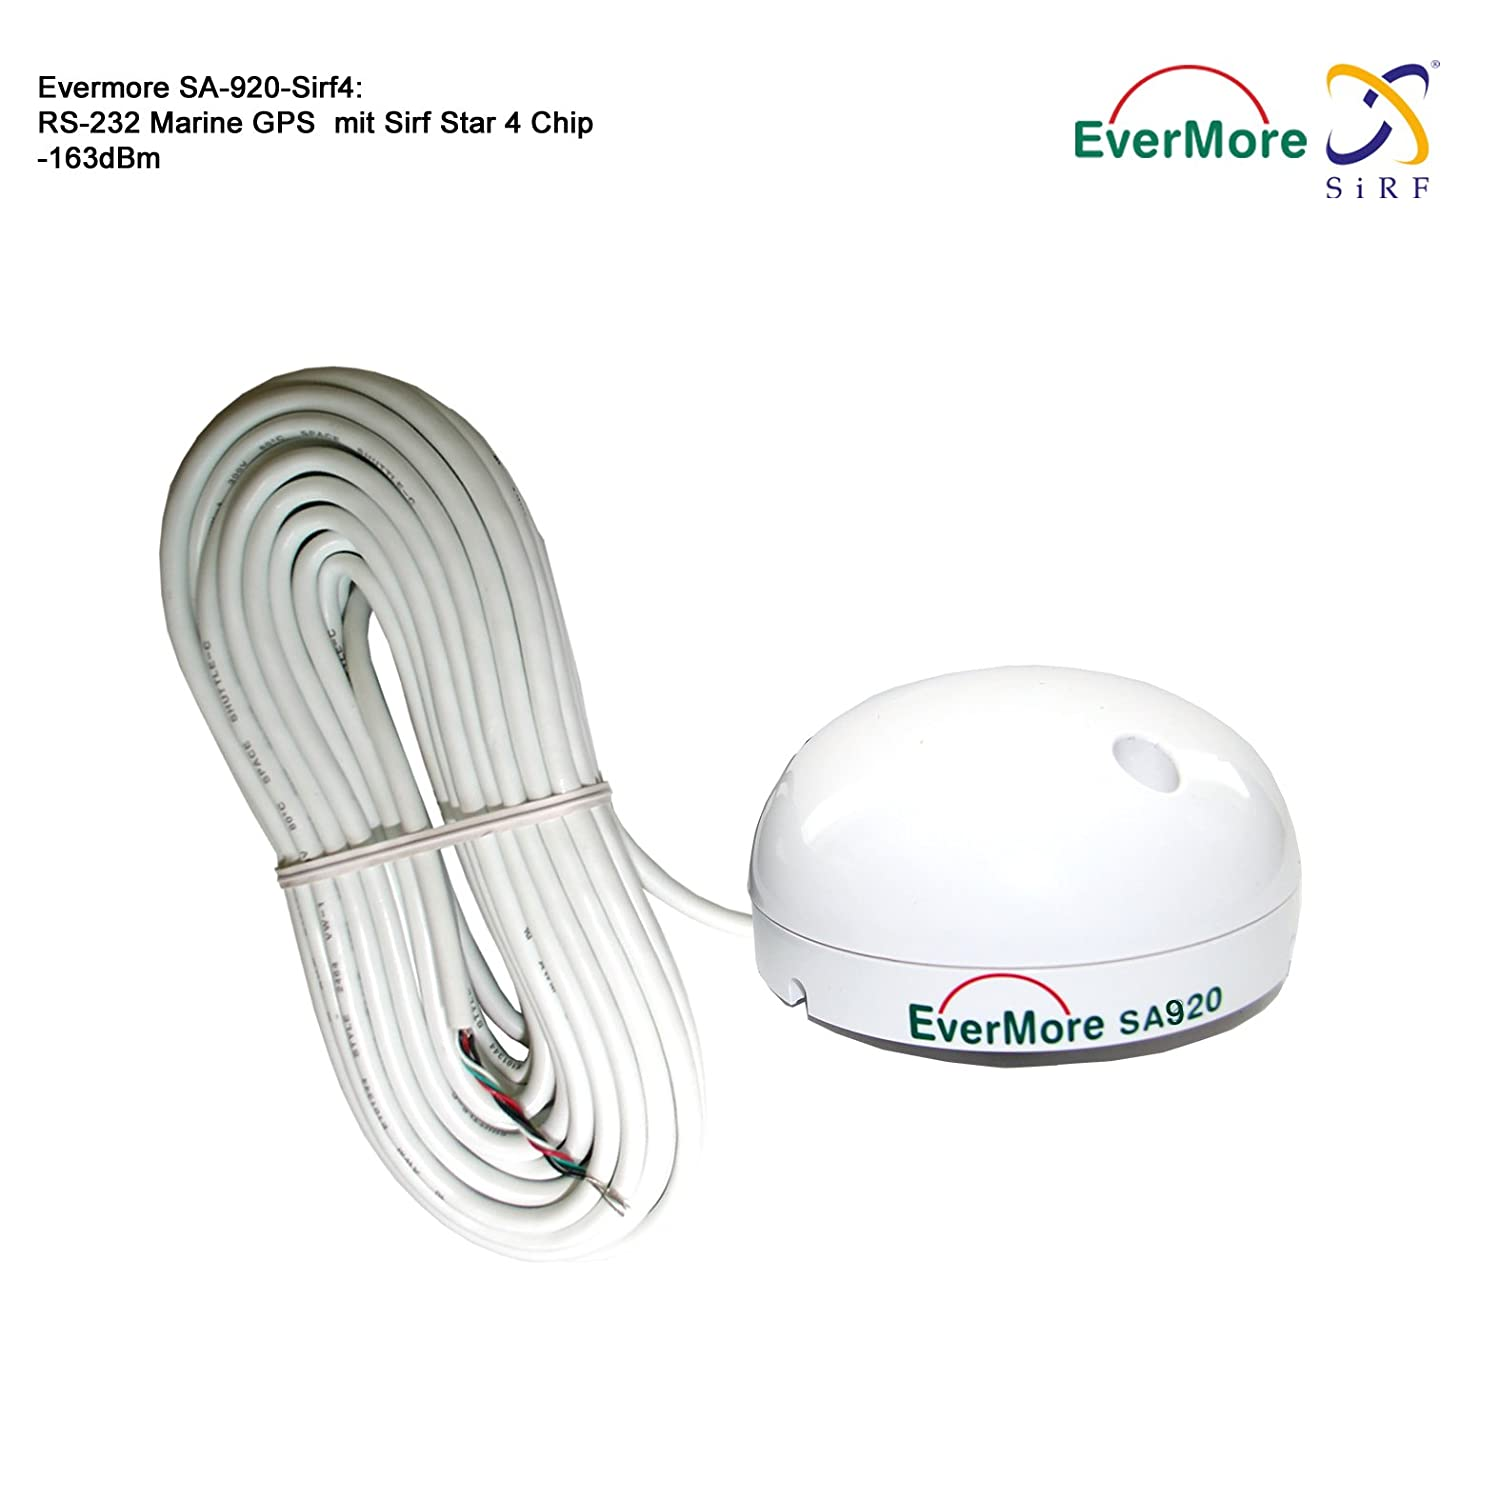 Rs232 Wiring Diagram Gps Antenna Library Marine For Amazoncom 48 Channel High Sensibility 163dbm Receiver Evermore Sa